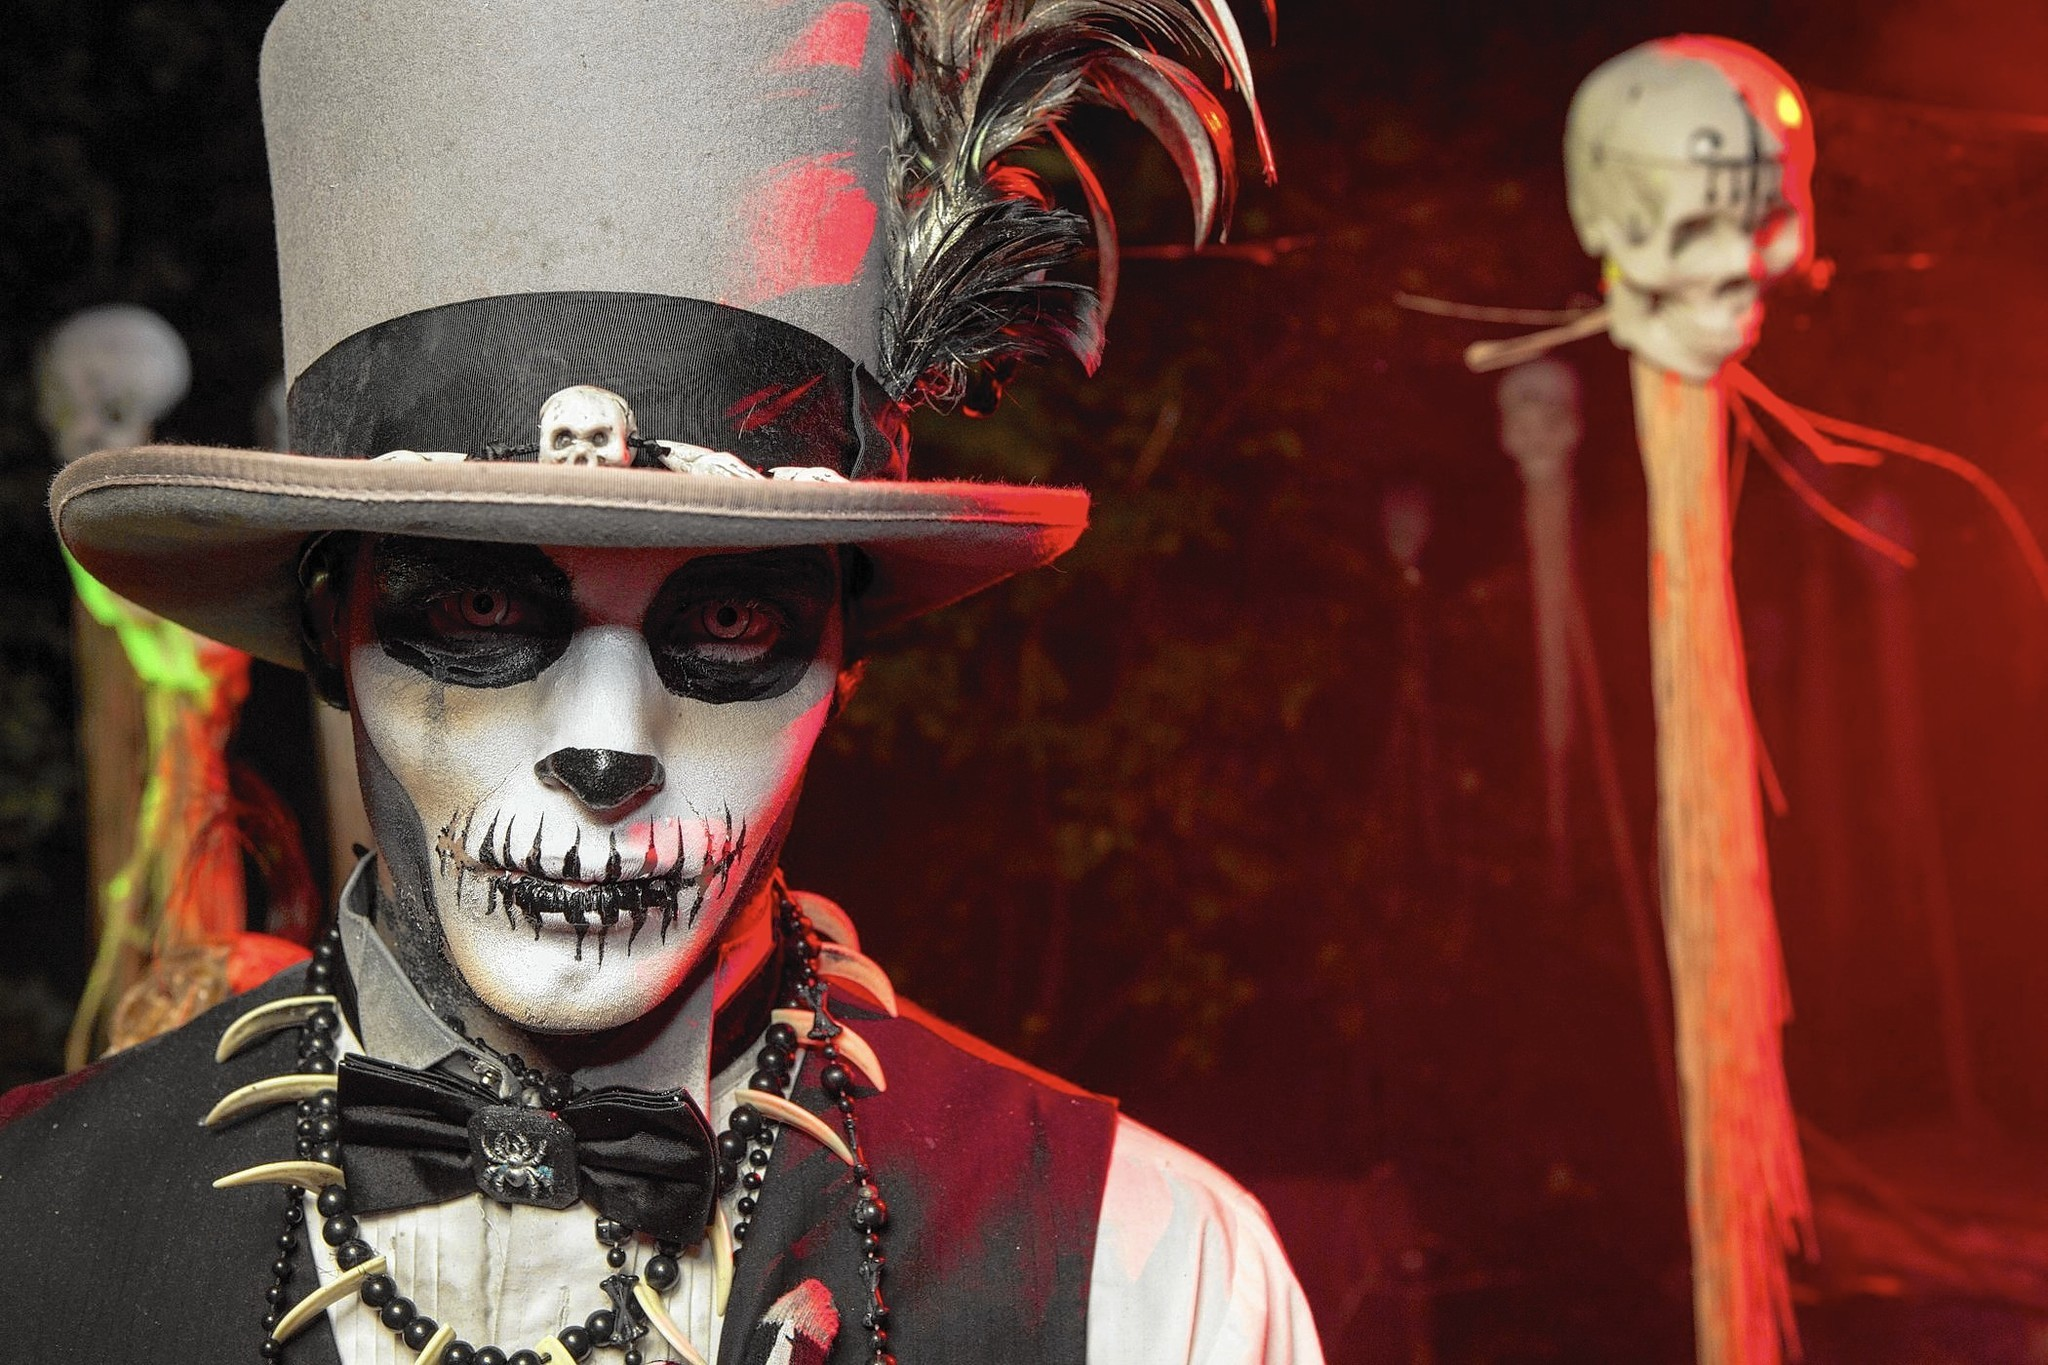 Oct 10, · With only 3 weekends left to experience HAUNT at Dorney Park, Week 3 did NOT disappoint. Mythological Creatures took over the Midways, .